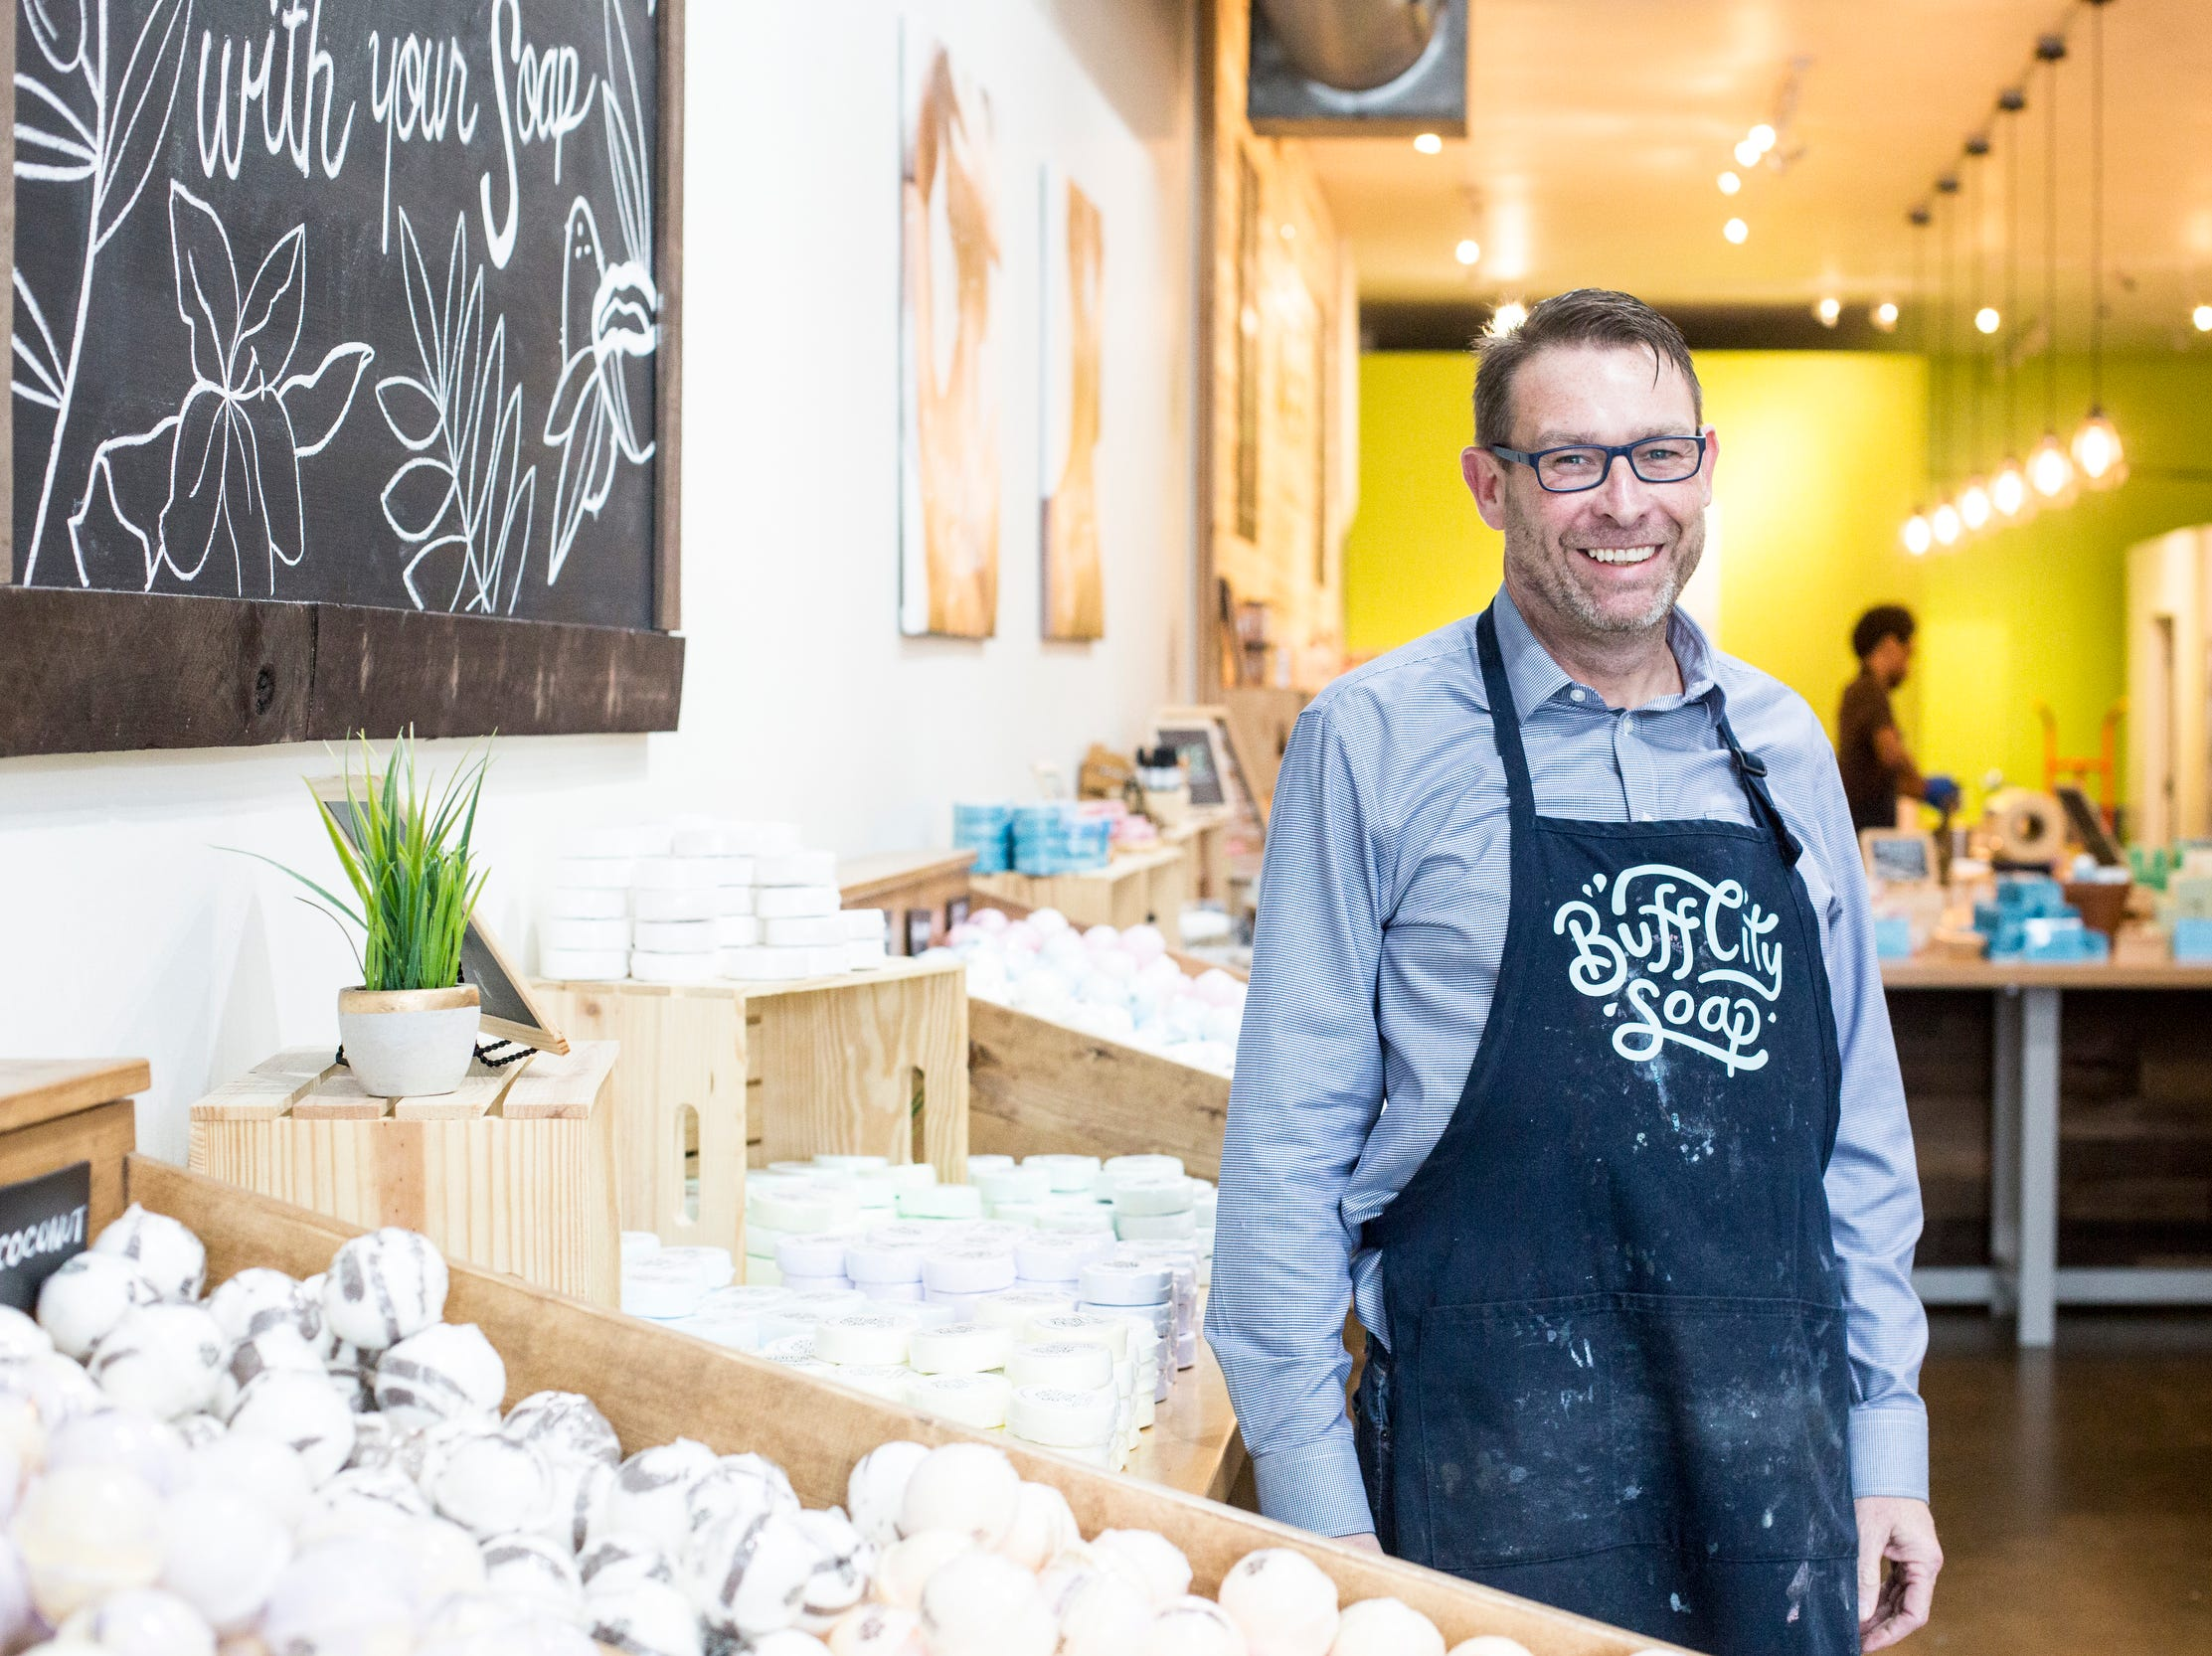 Buff City Soap plans to become 'the Starbucks of soap'